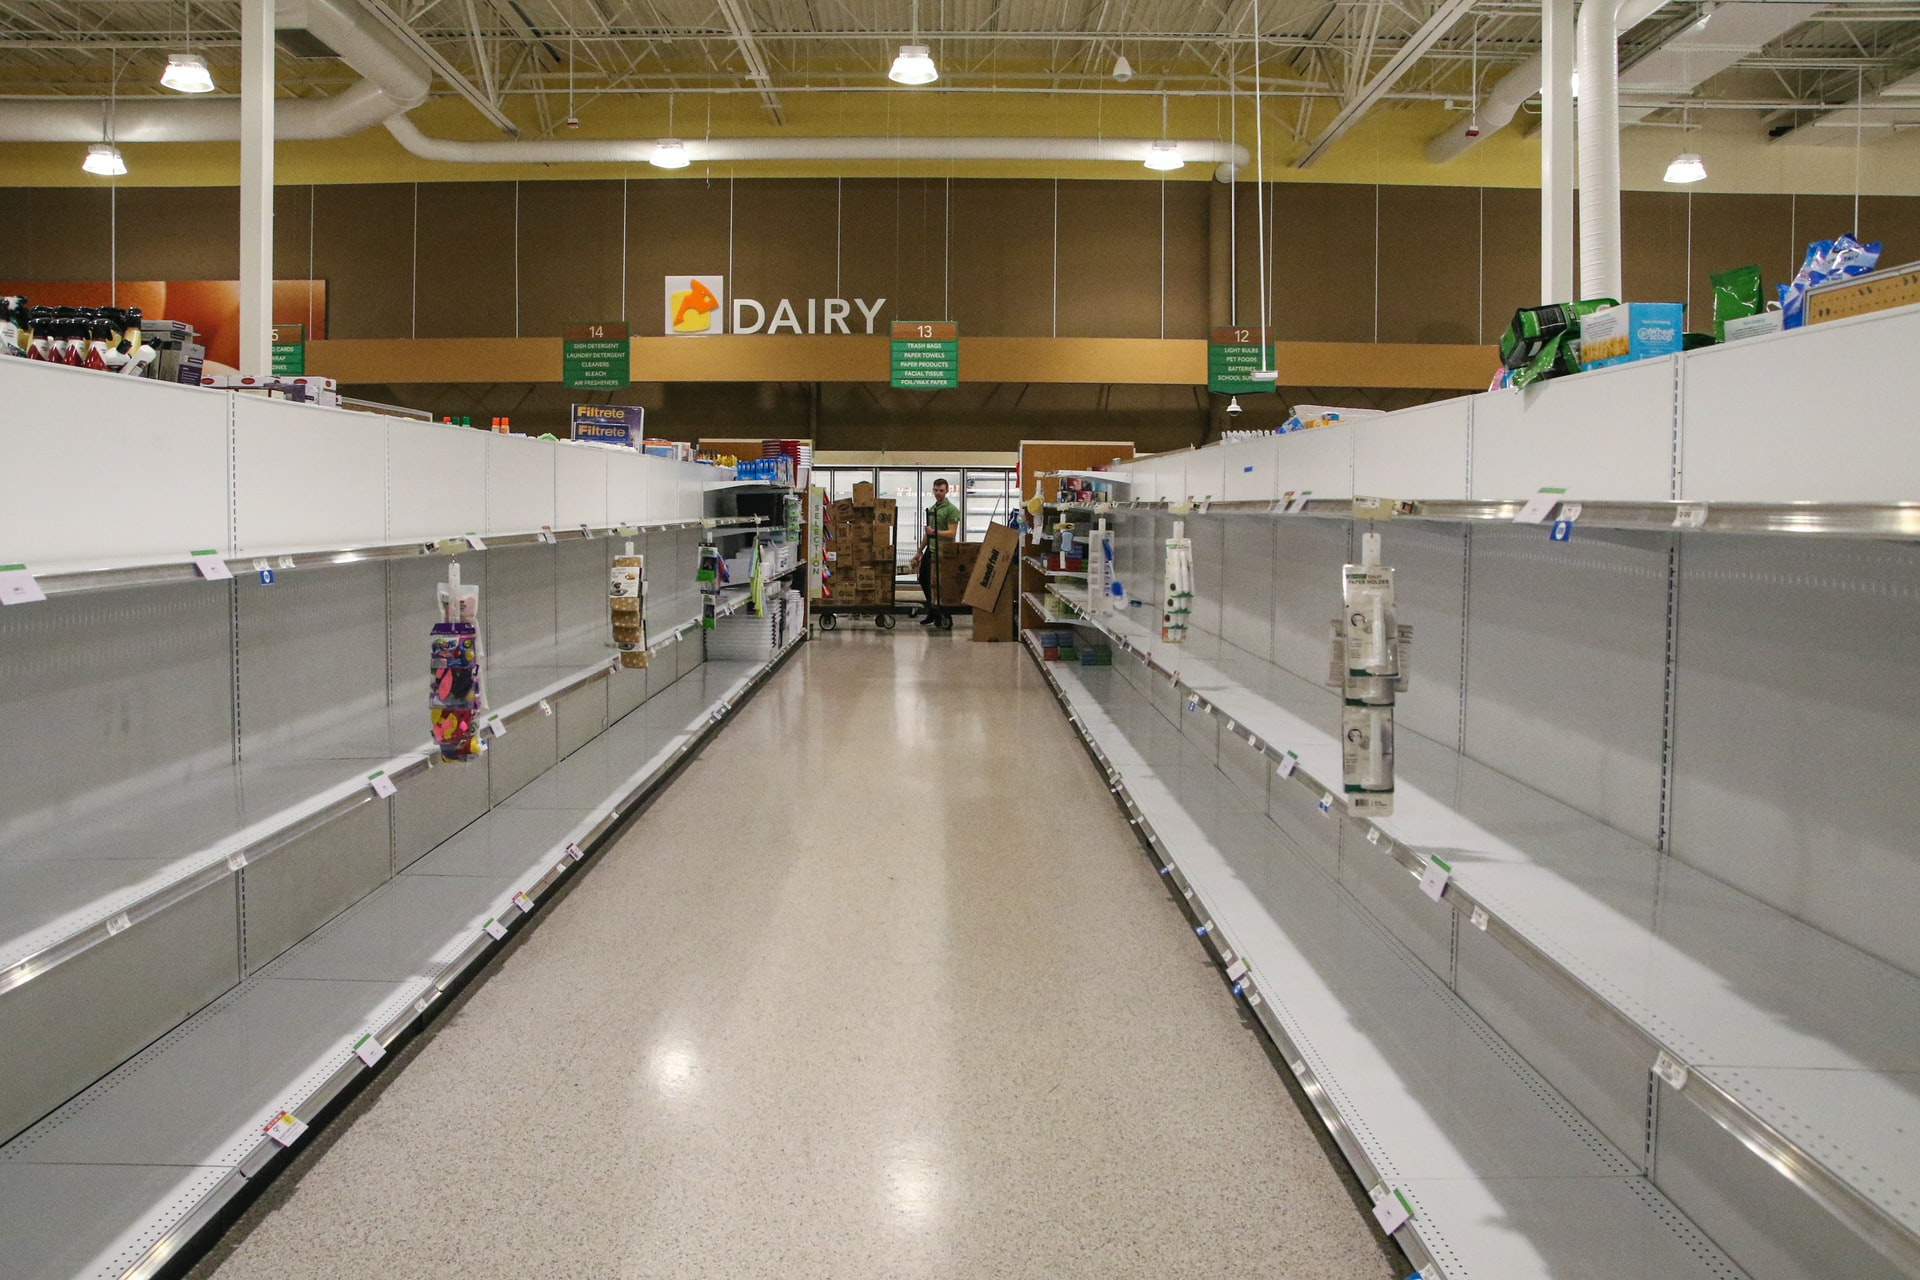 Empty store shelves, security in 2020